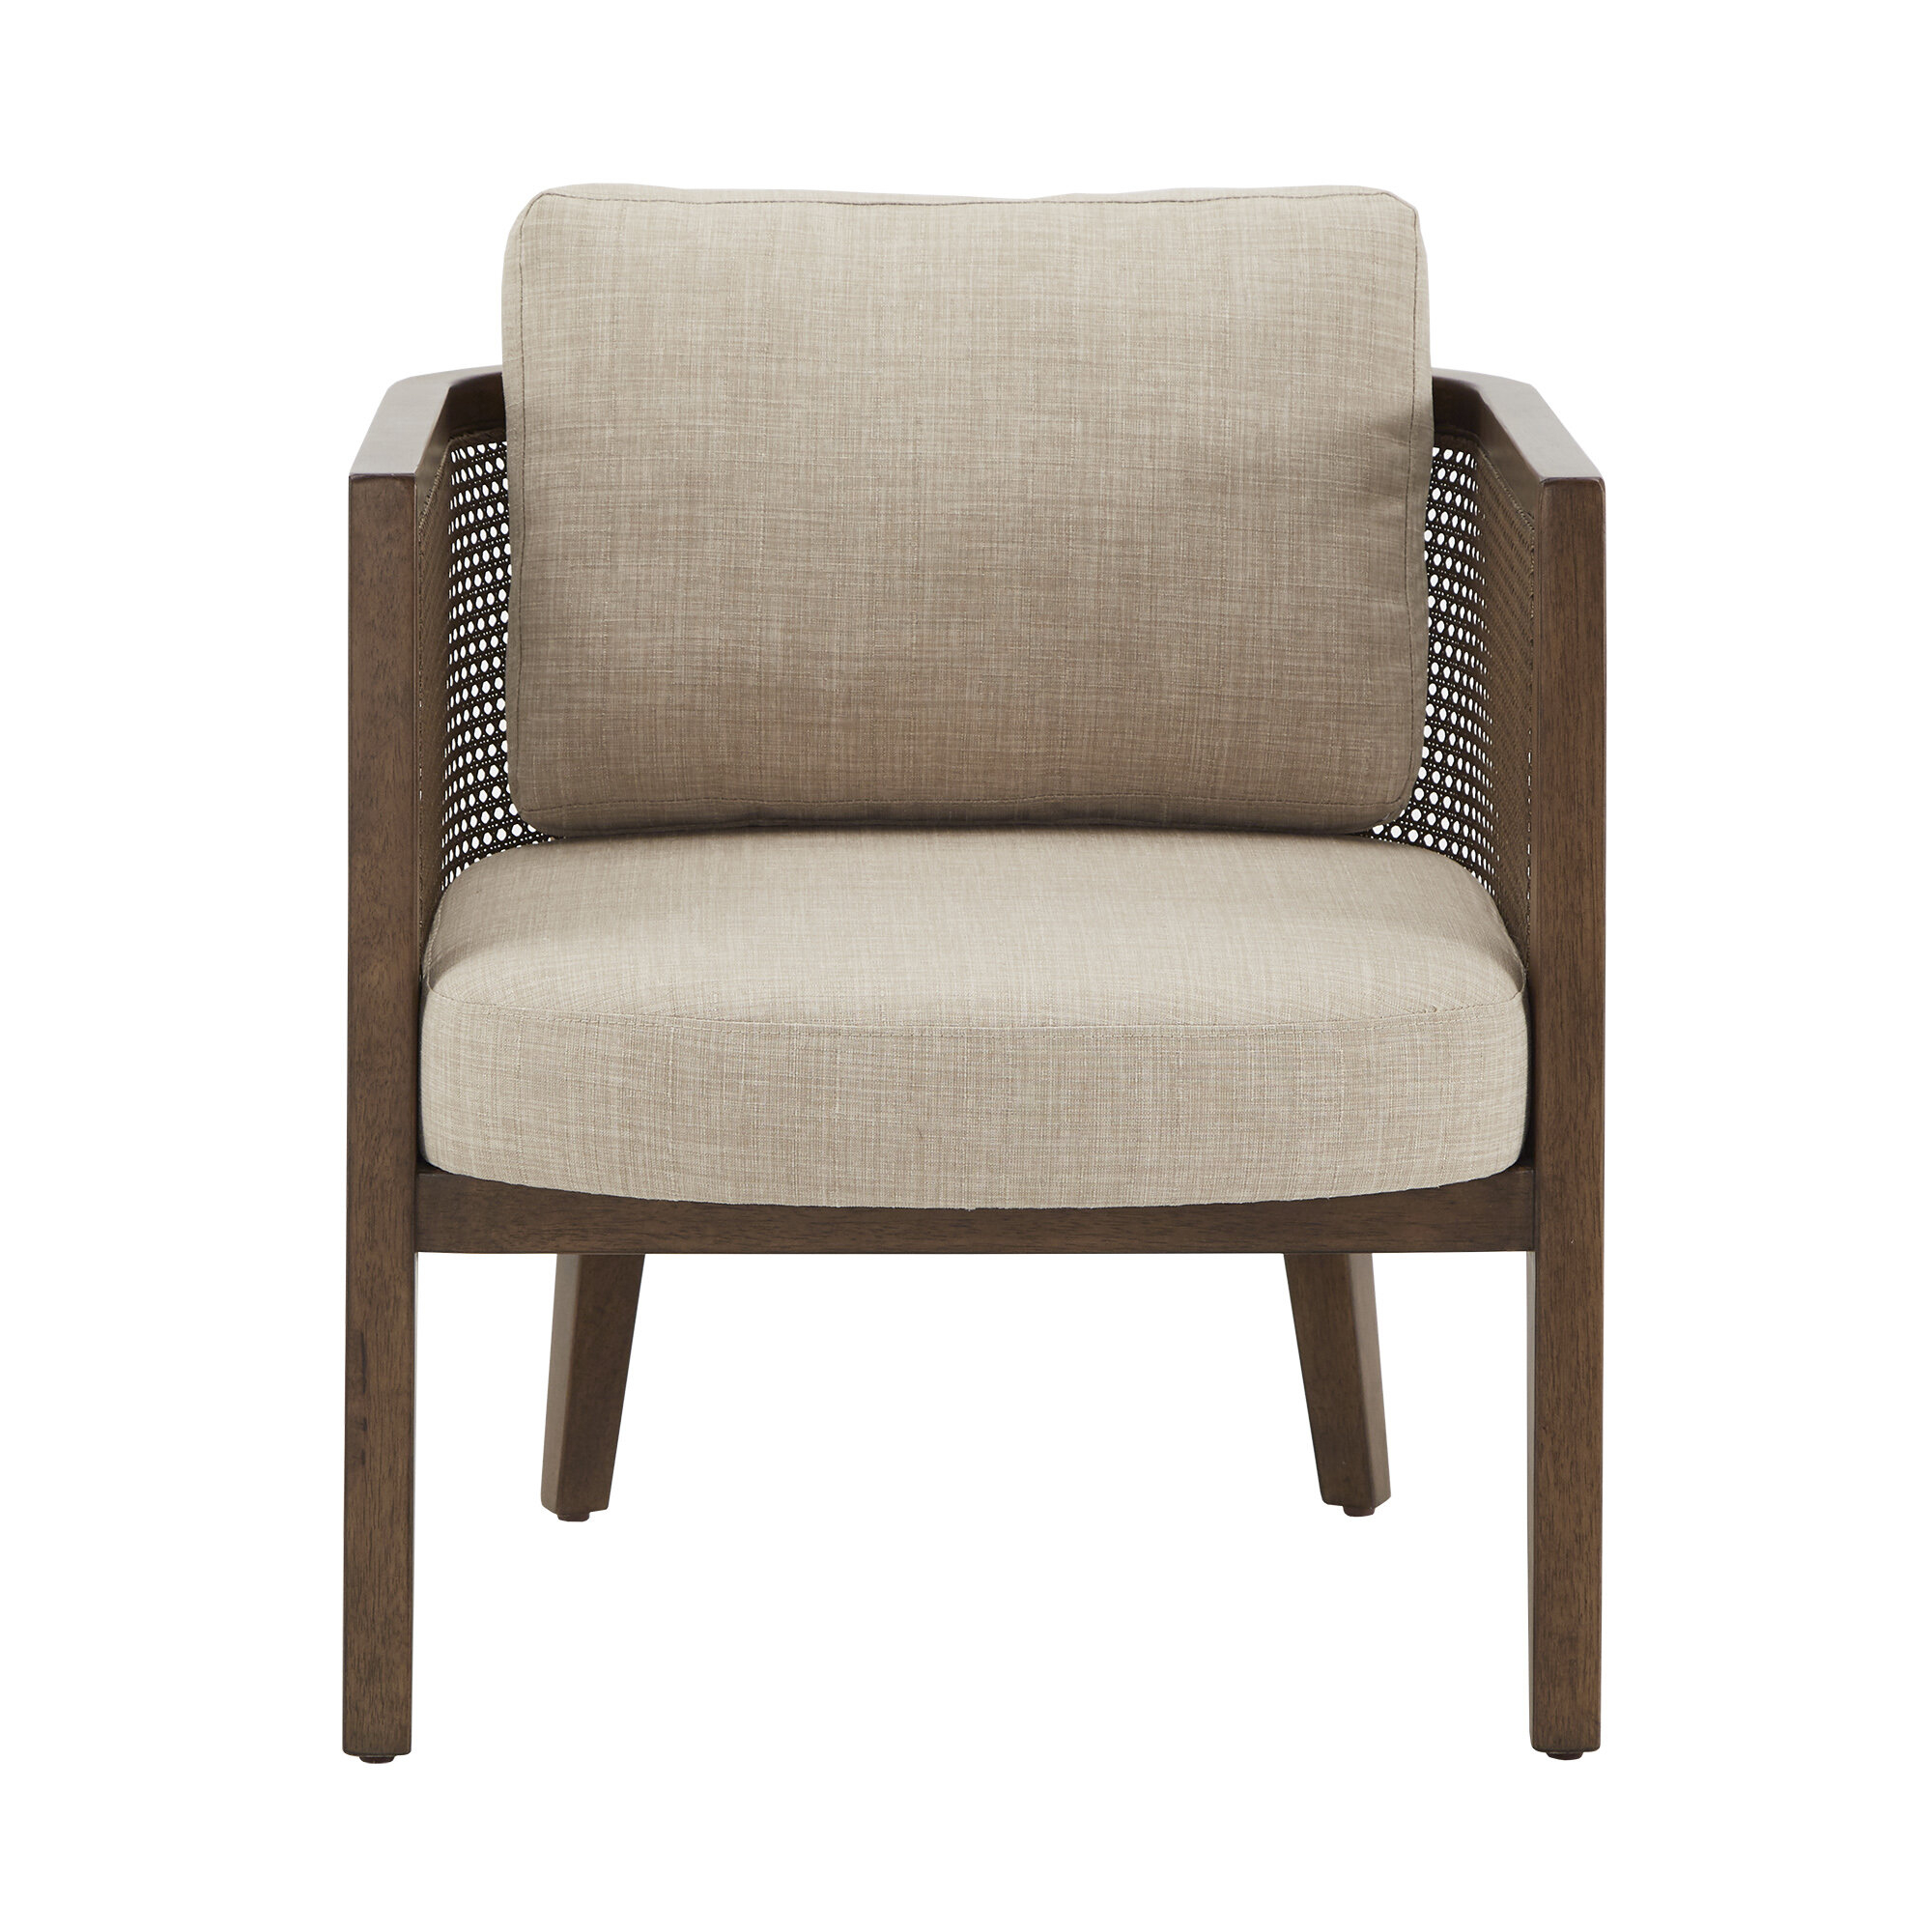 "Boisvert 27"" W Polyester Blend Armchair Inside Polyester Blend Armchairs (View 11 of 15)"